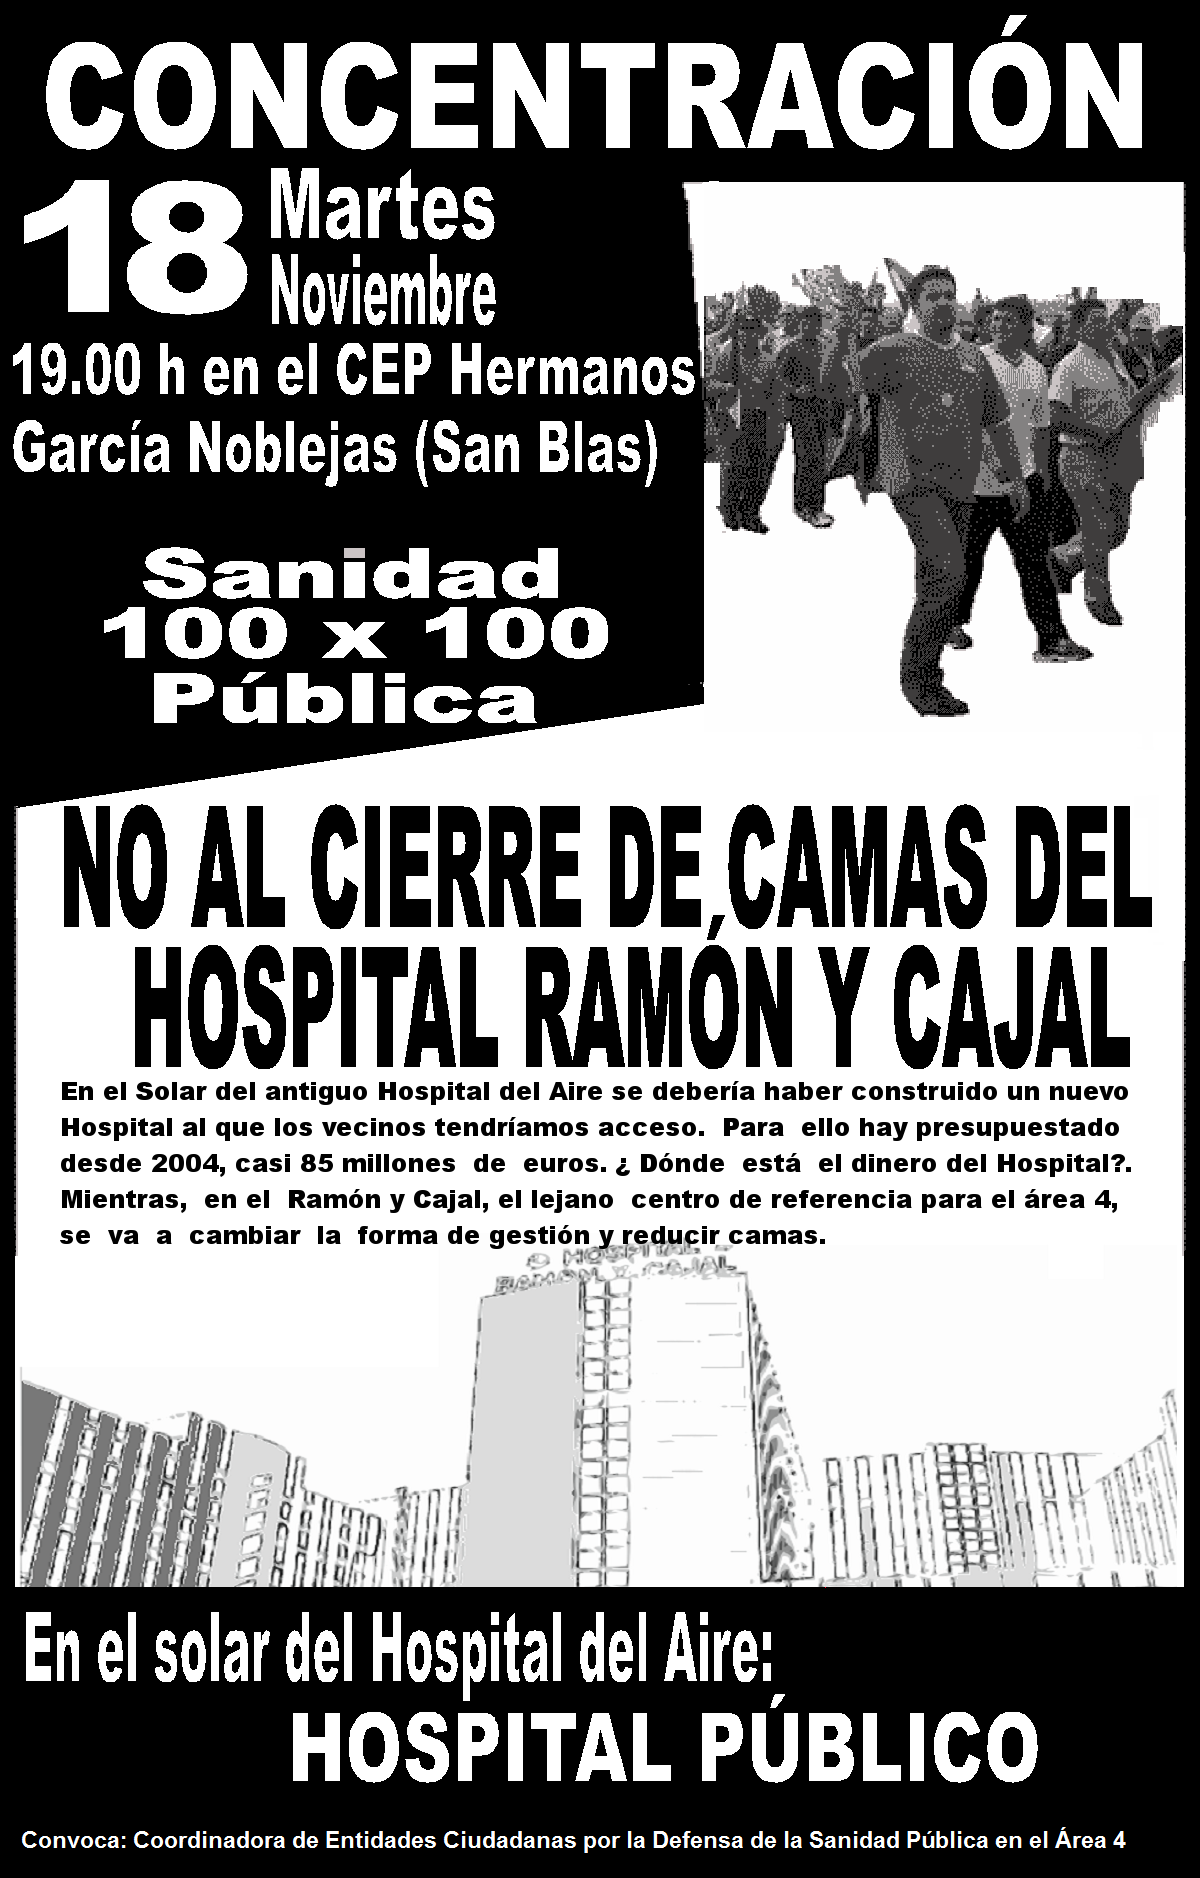 Los usuarios del rea 4 de salud siguen su lucha por un Hospital Pblico en los terrenos del Hospital del Aire y en defensa de la Sanidad 100 x 100 pblica.